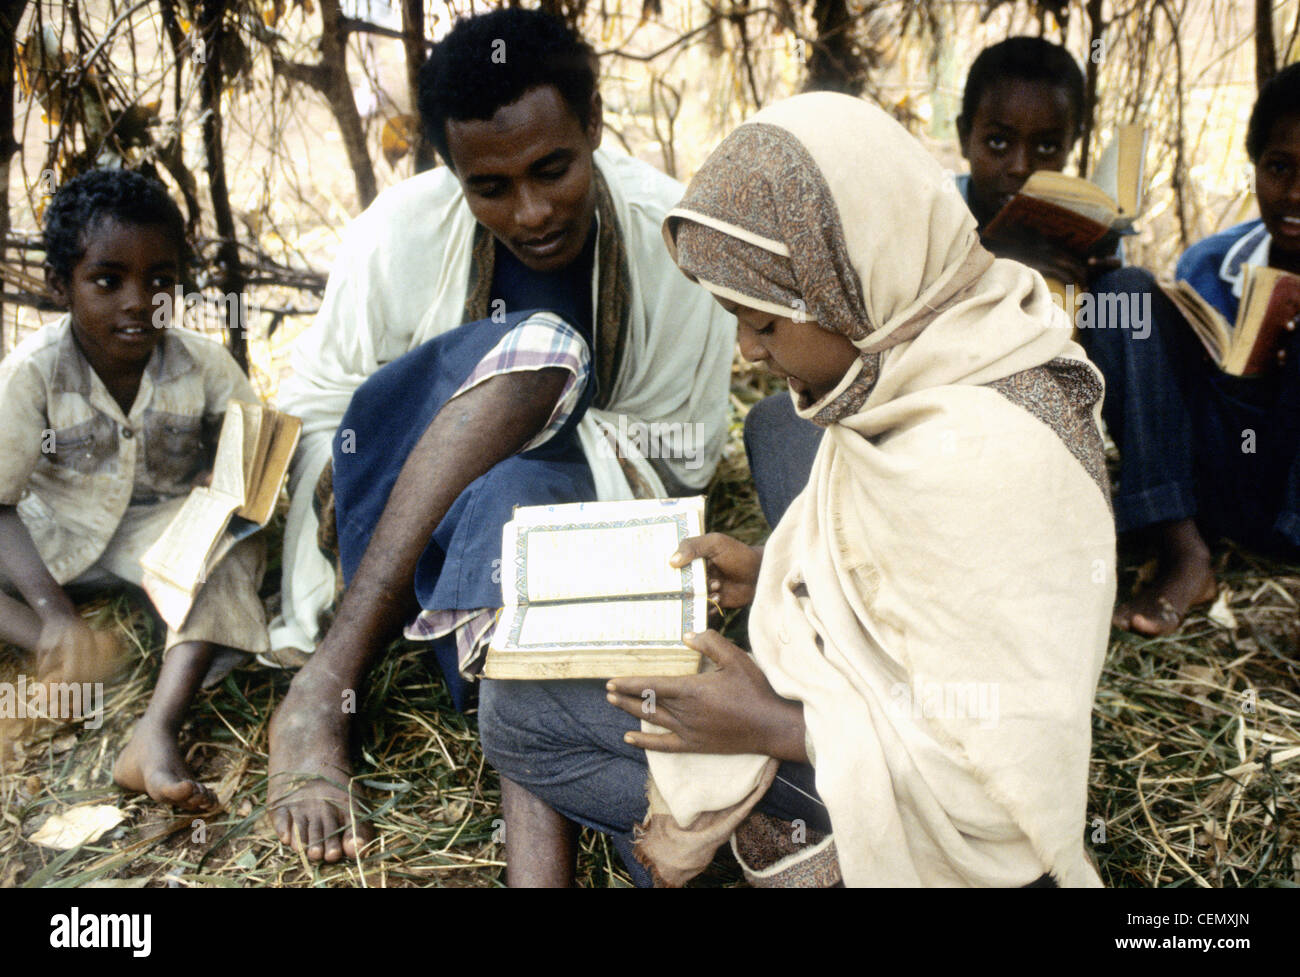 A woman reads the Koran in a refugee camp in Northern Kenya. - Stock Image